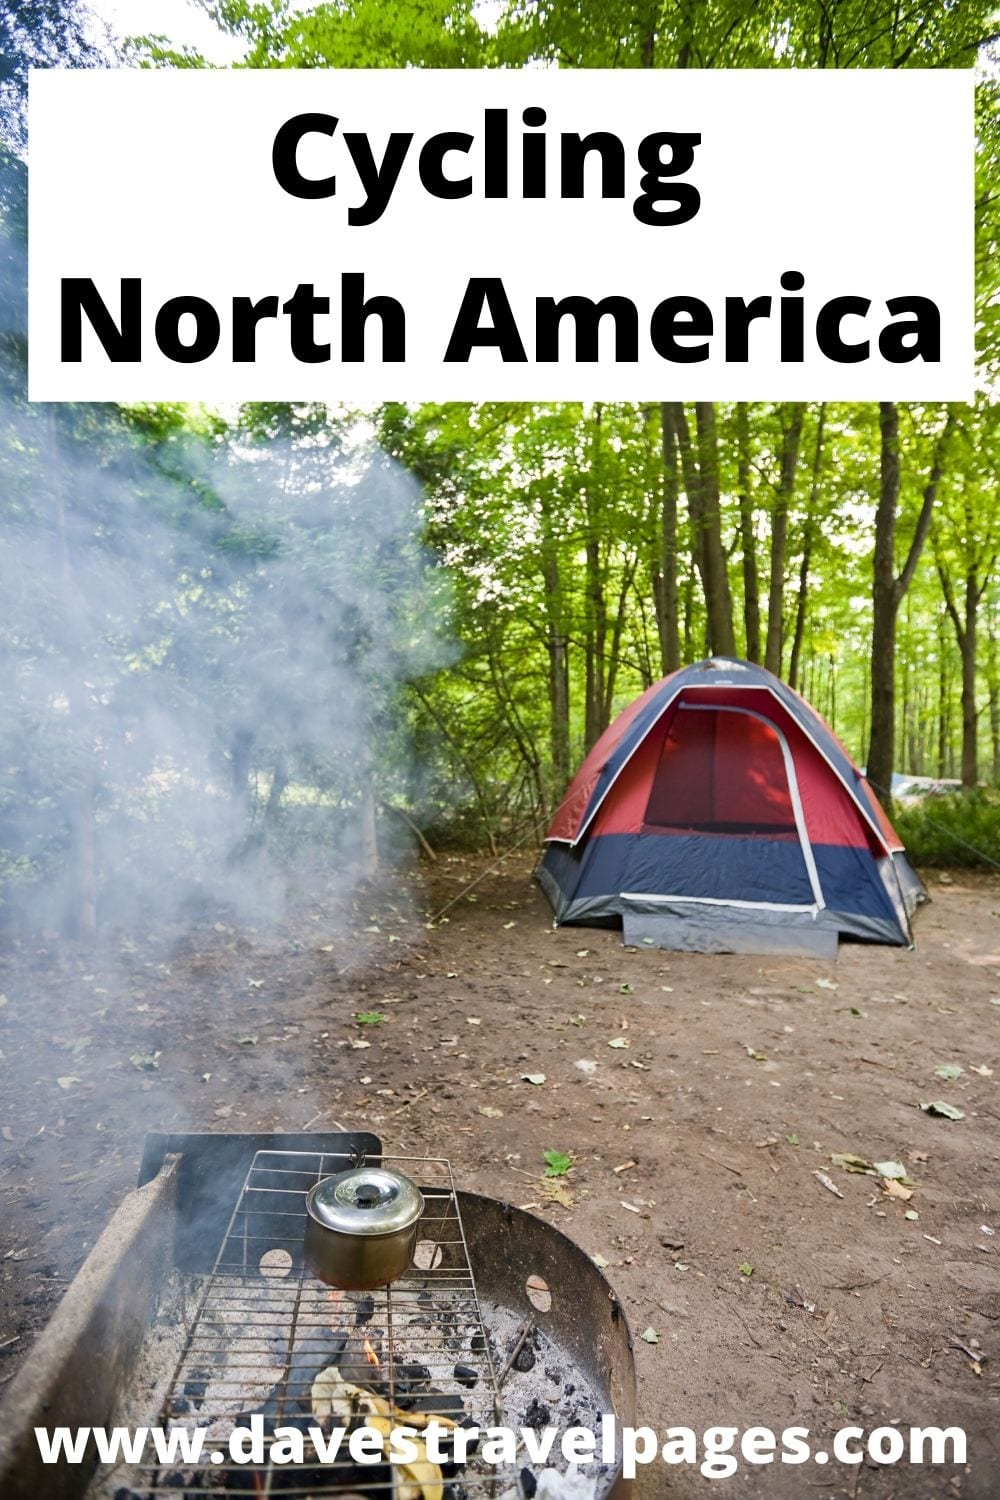 Cycle touring in North America